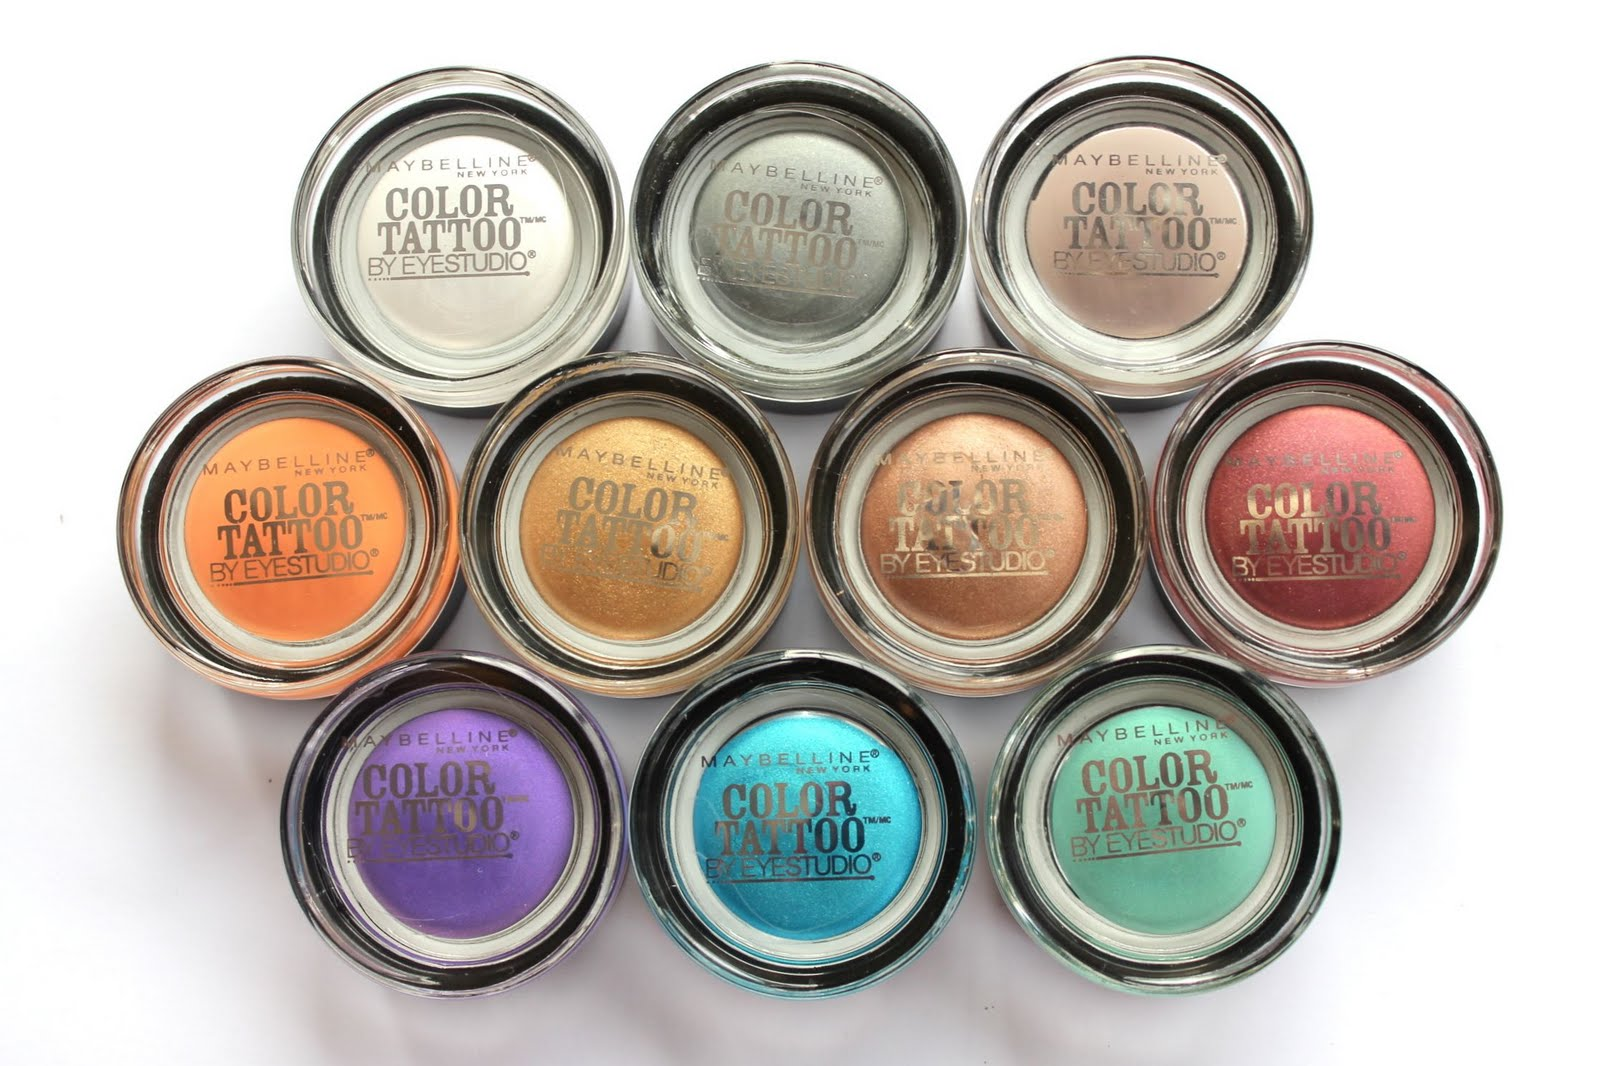 Color Tattoo 24 hour от Maybelline